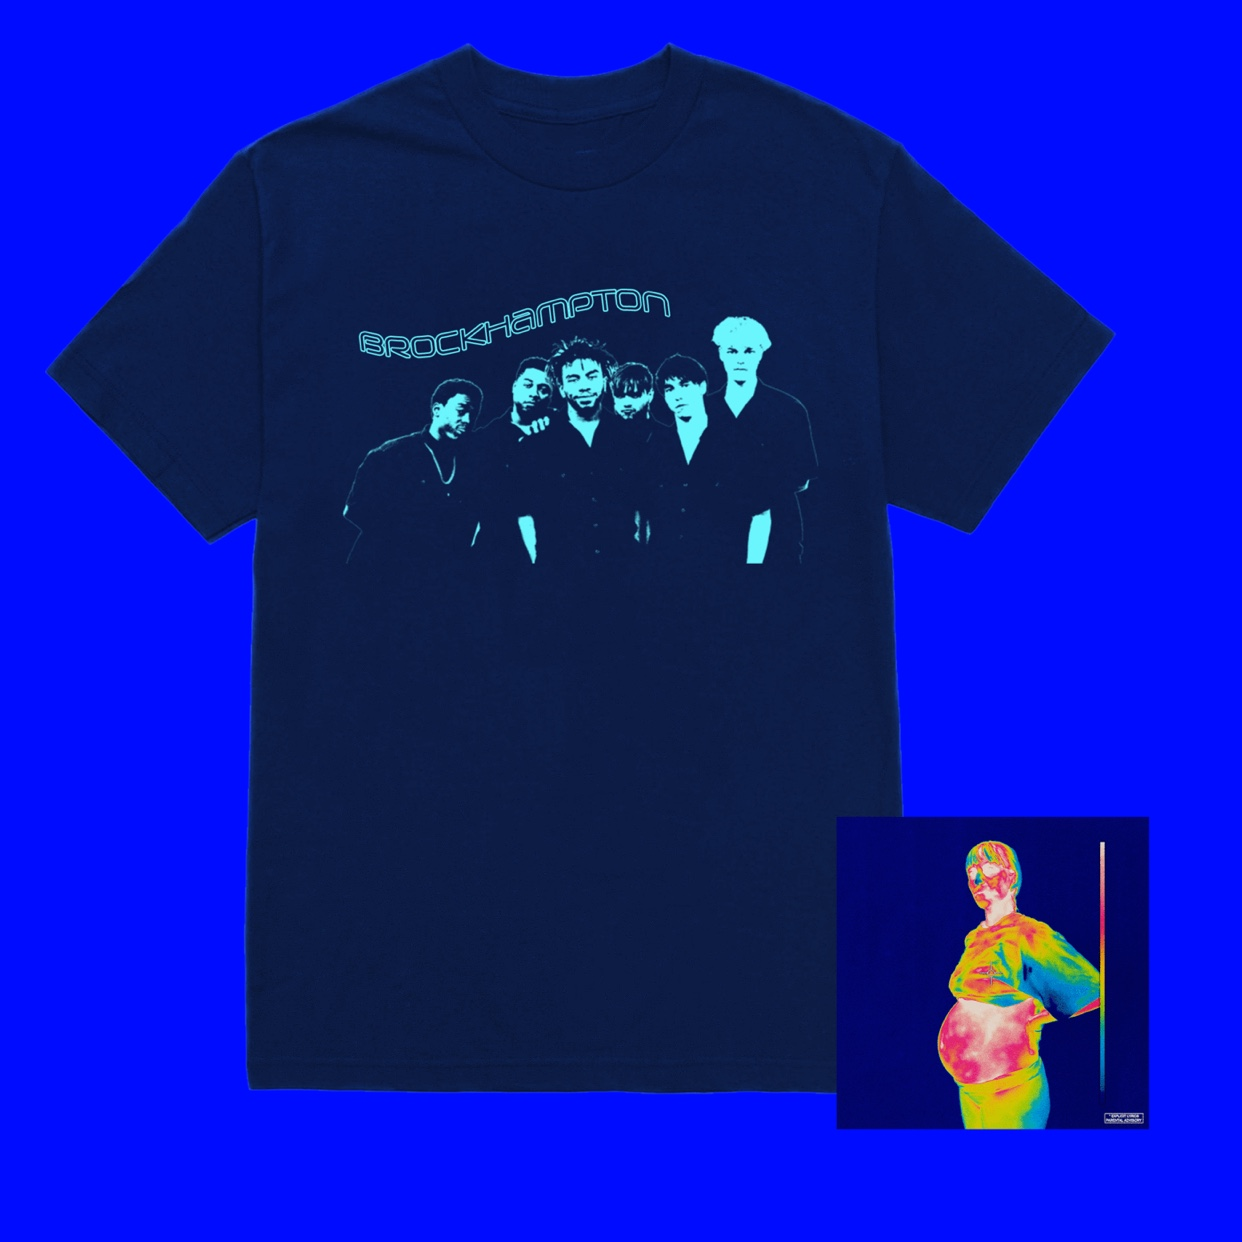 82e147685 brockhampton the number one boyband in show business... - Depop